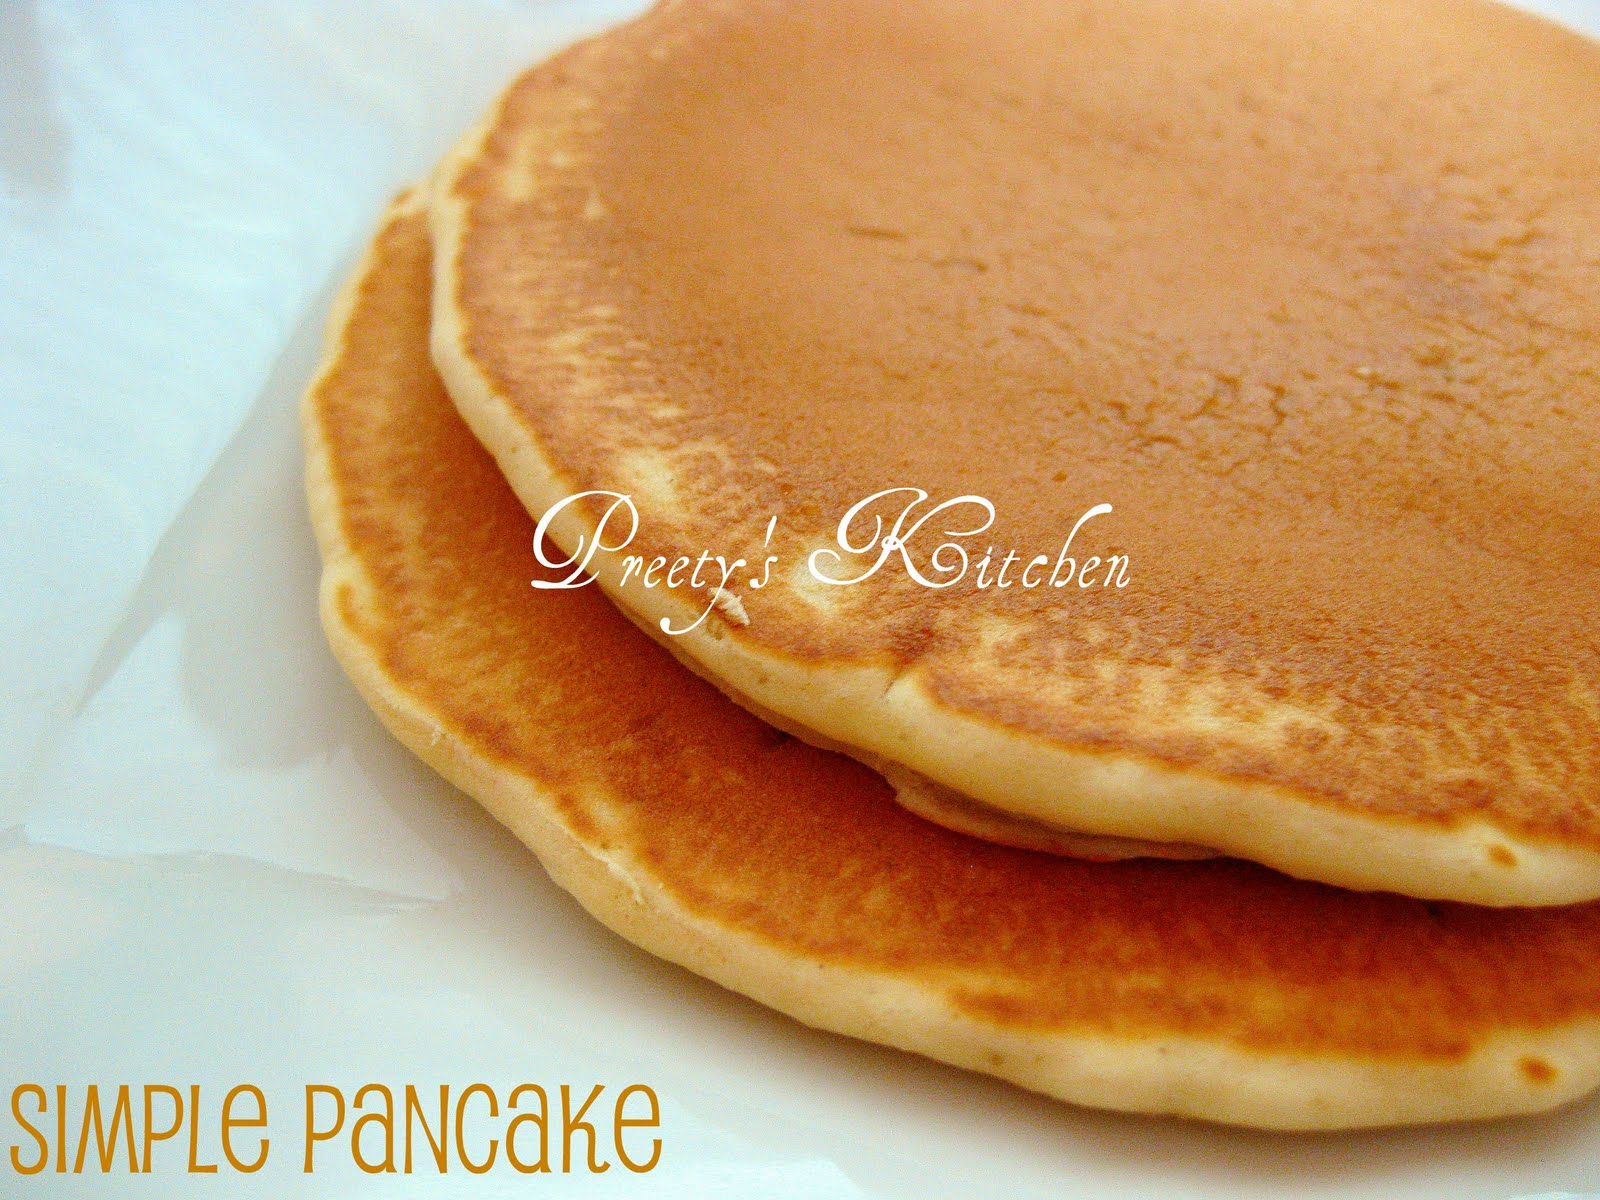 Preetys kitchen simple pancake recipe ccuart Gallery